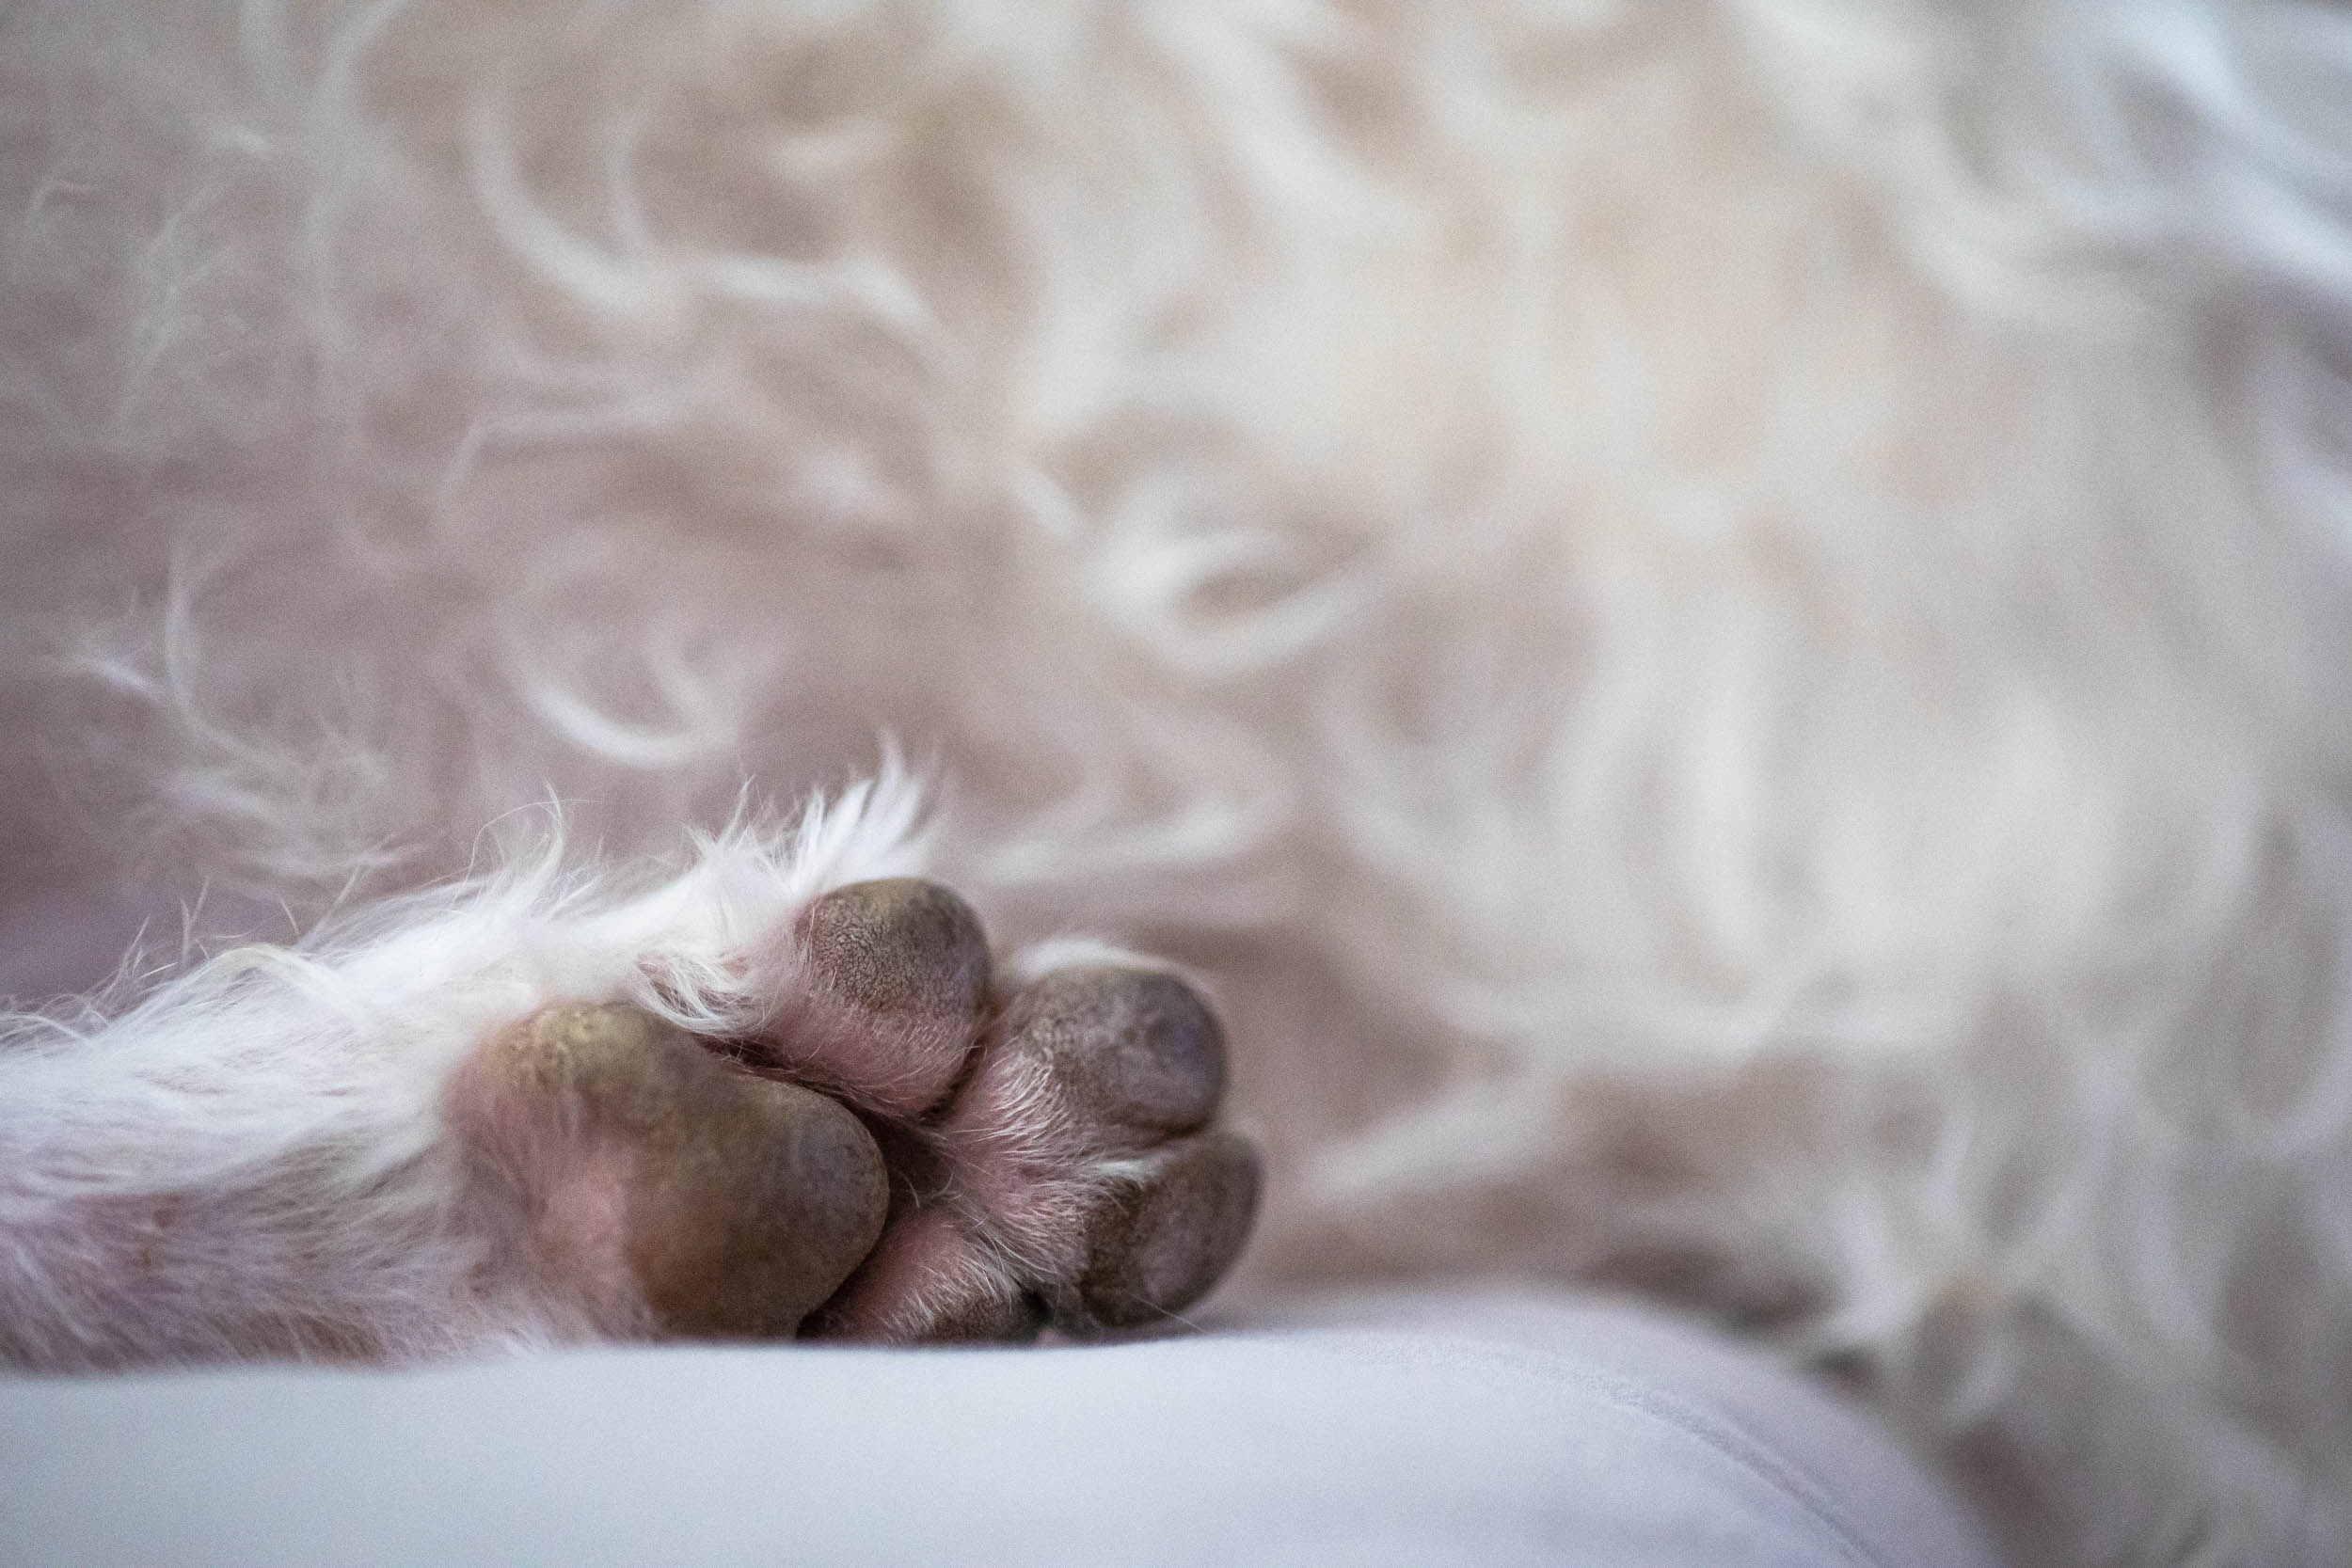 Dog toes…one of my favorite subjects (don't judge)